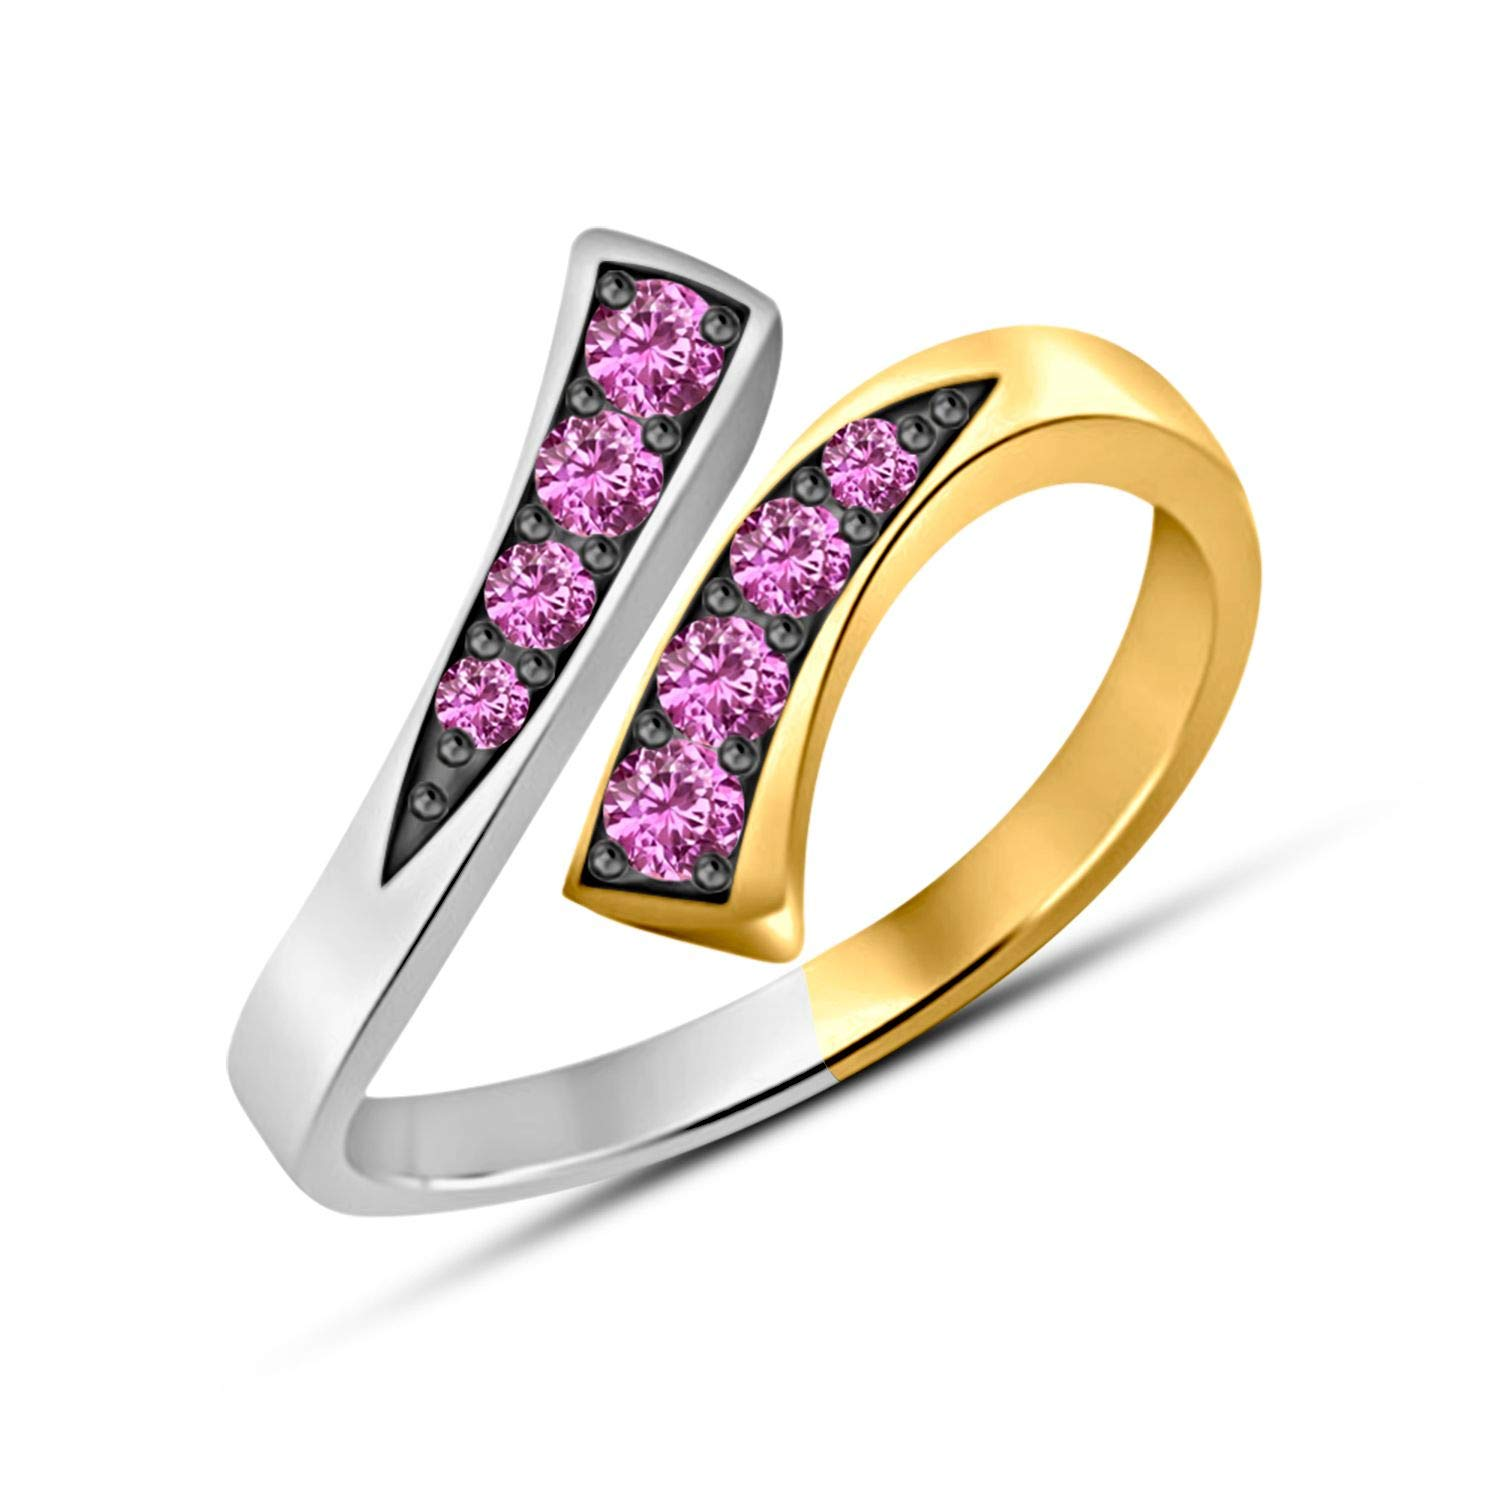 Gemstar Jewellery Girls Adjustable Bypass Toe Ring in 925 Sterling Silver Round Shape Pink Sapphire